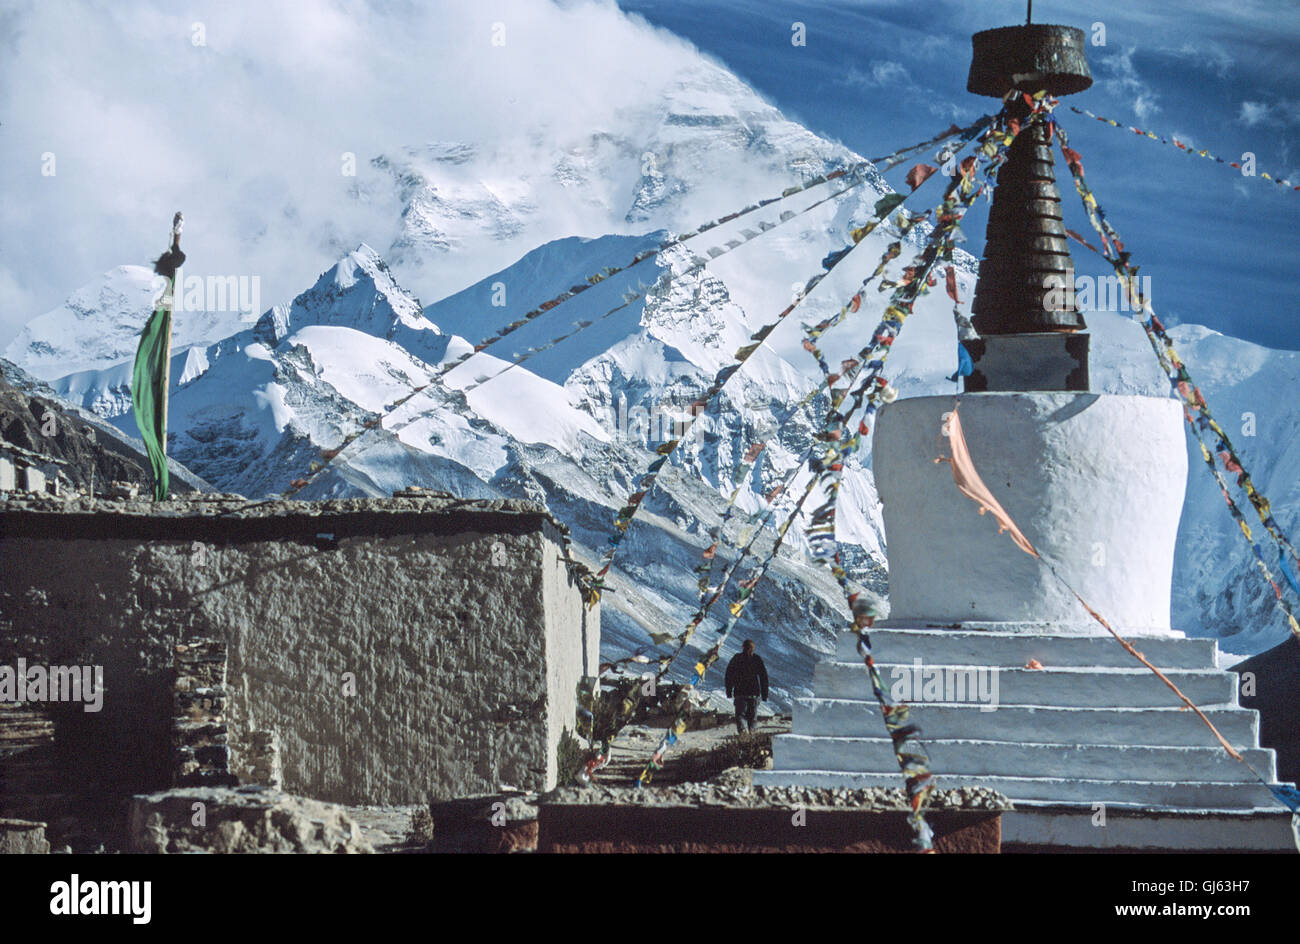 Buddhist  chorten  at  Rongbuk  monastery  with  Mount  Everest  (8,848 metres)  in  the  background  looming  up - Stock Image